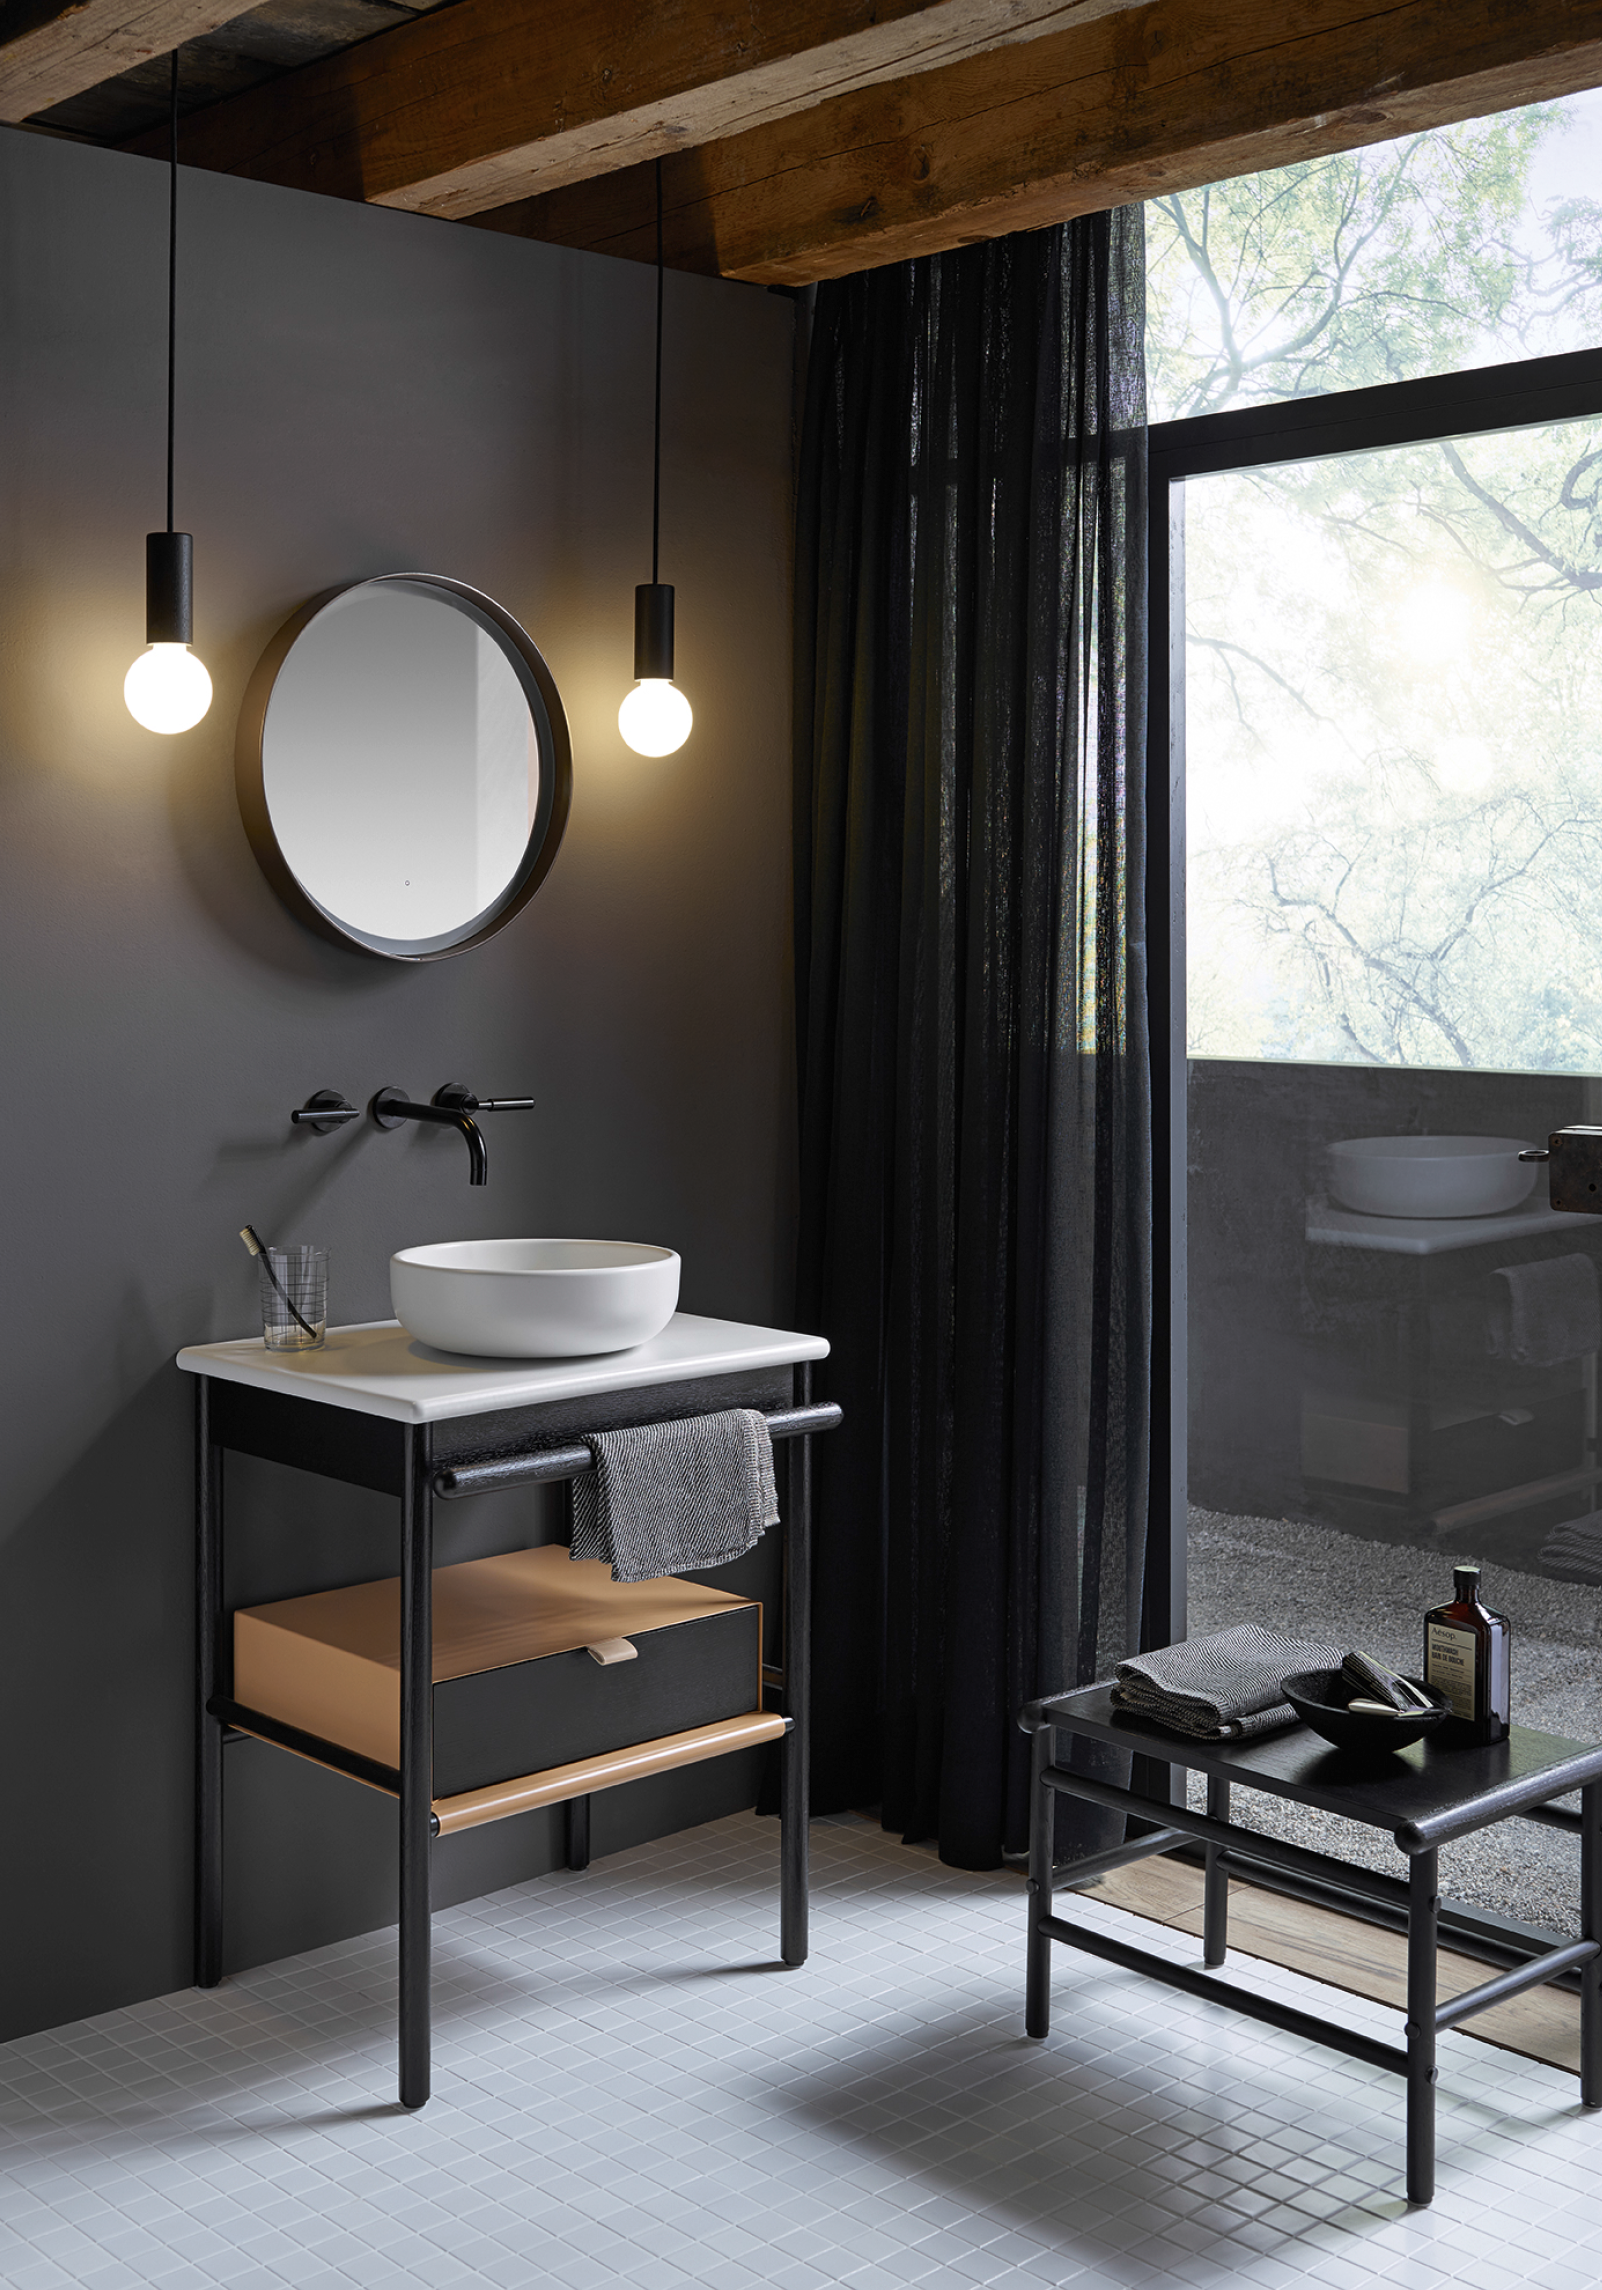 Mya Design Studio Altherr For Burgbad For Small Bathrooms